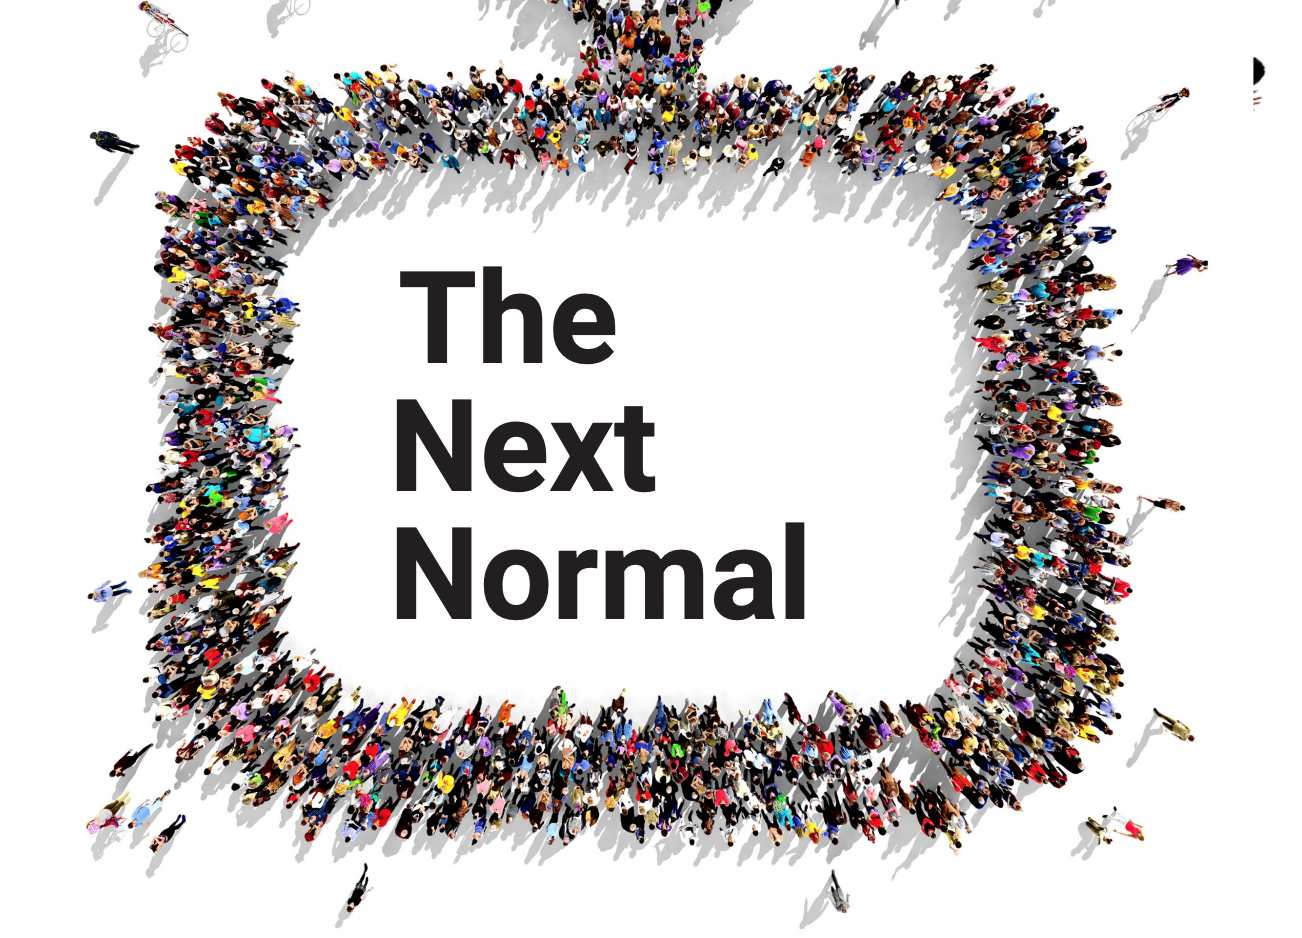 The Next Normal